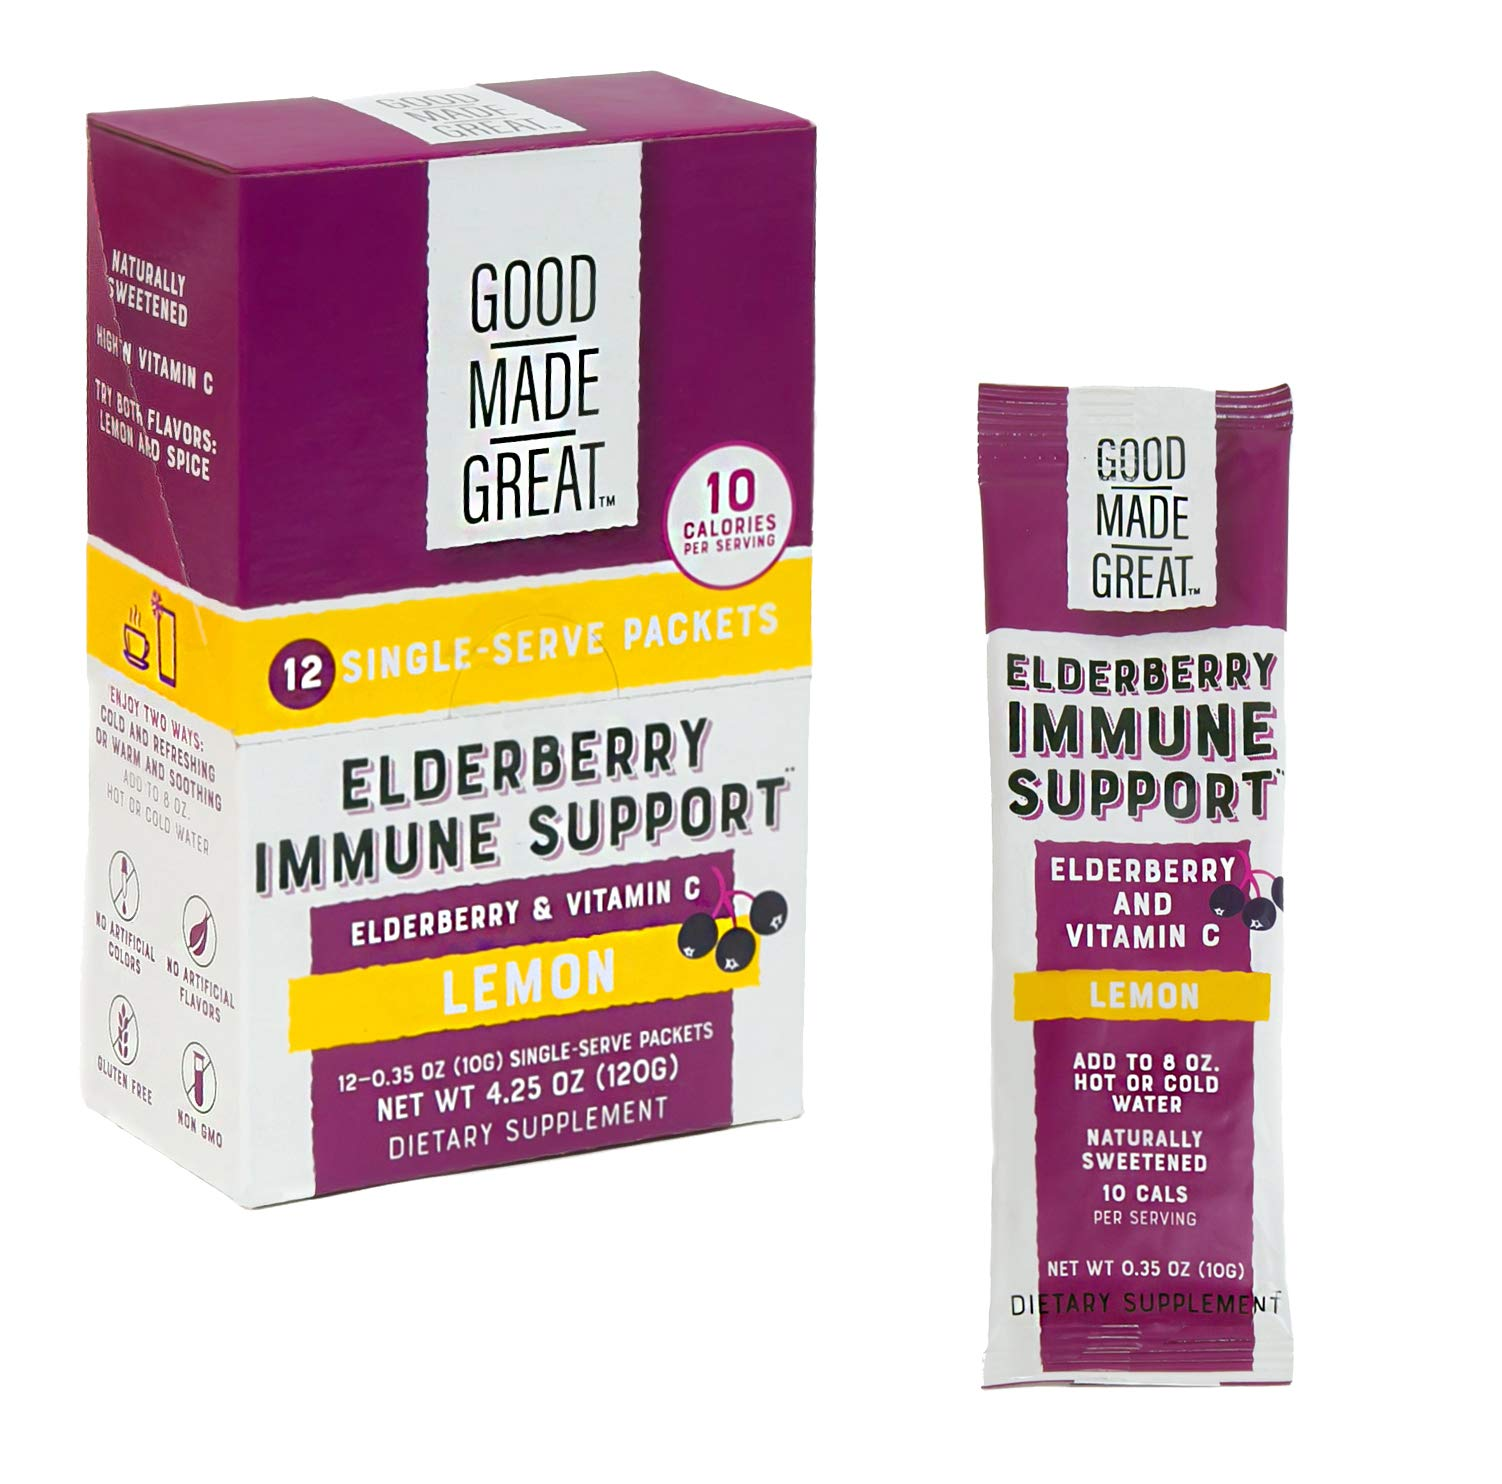 Elderberry Drink Mix (1250mg) Replaces Syrup/Gummies/Tea, with Vitamin C (500mg) for Immune Support - Non-GMO - Low Sugar - Natural Lemon Flavor by Good Made Great